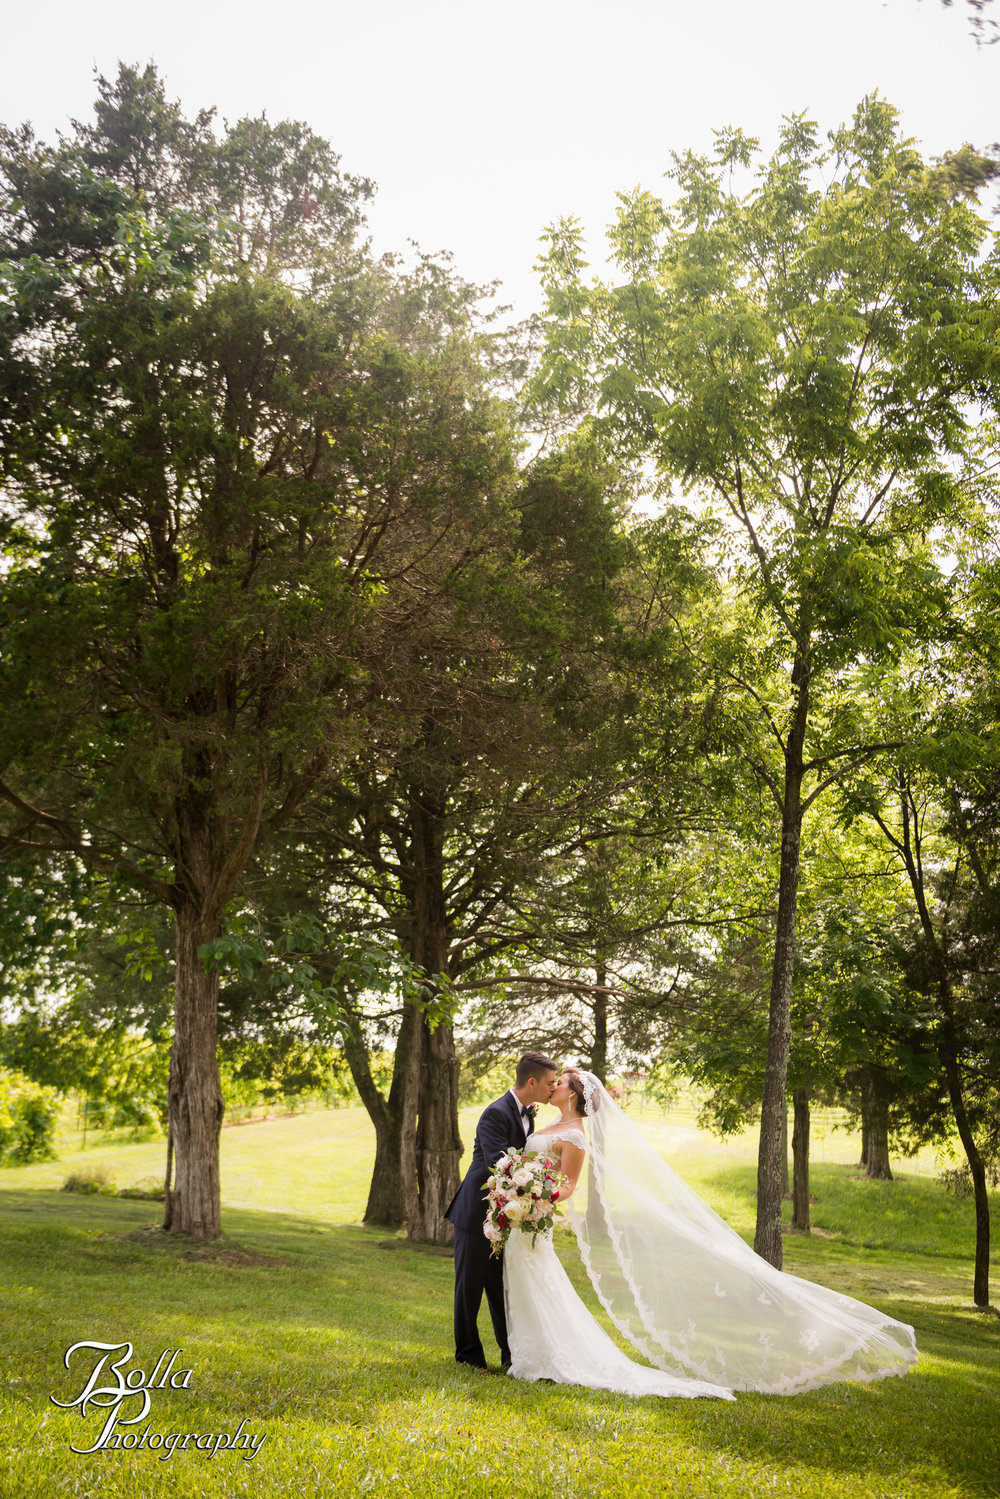 Bolla_photography_edwardsville_wedding_photographer_st_louis_weddings_Chaumette_winery_Mikusch-0002.jpg